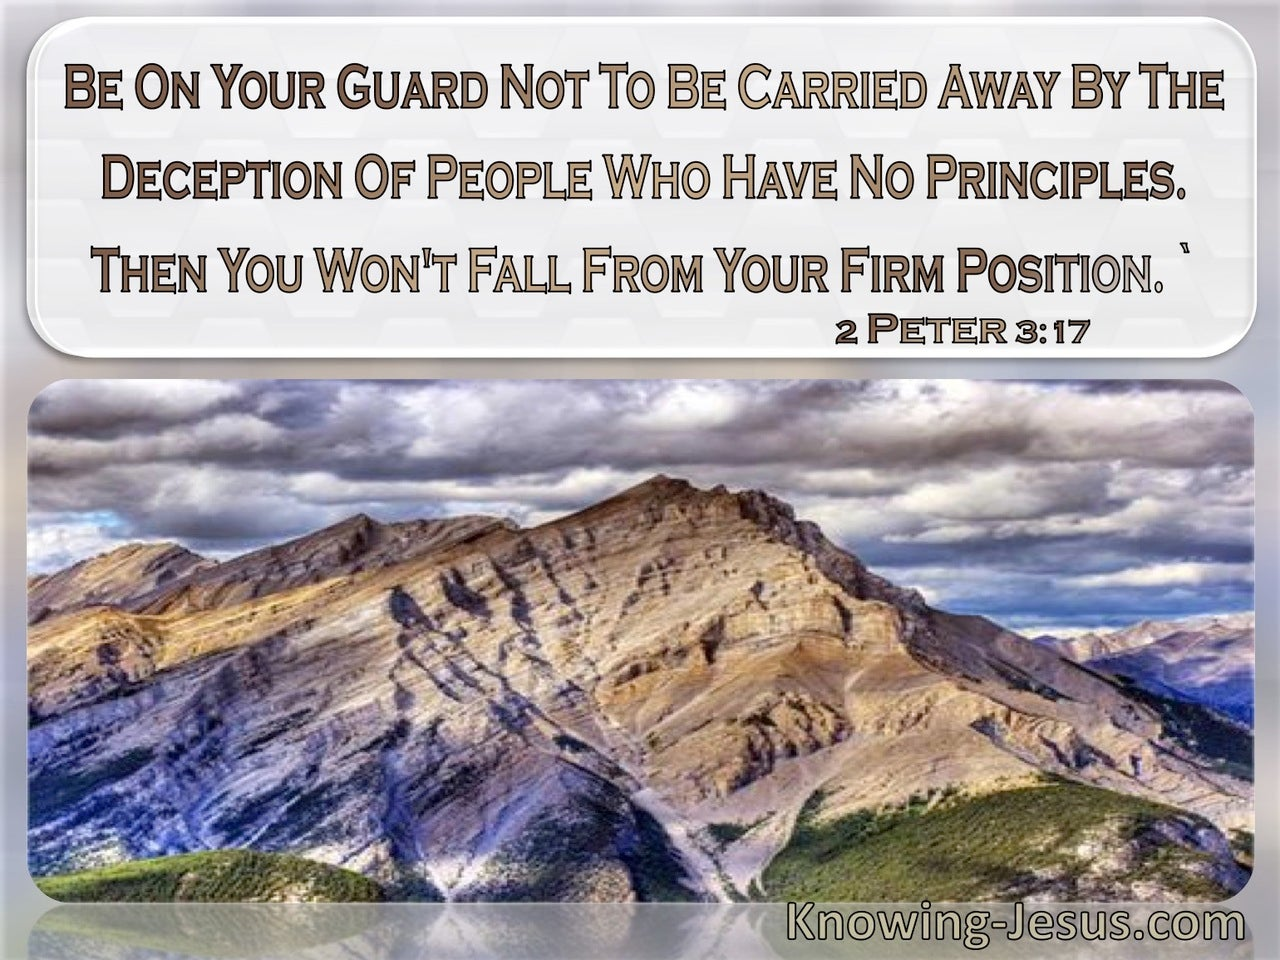 2 Peter 3:17 Do Not Be Carried Away By The Deception Of People With No Principles (windows)08:04